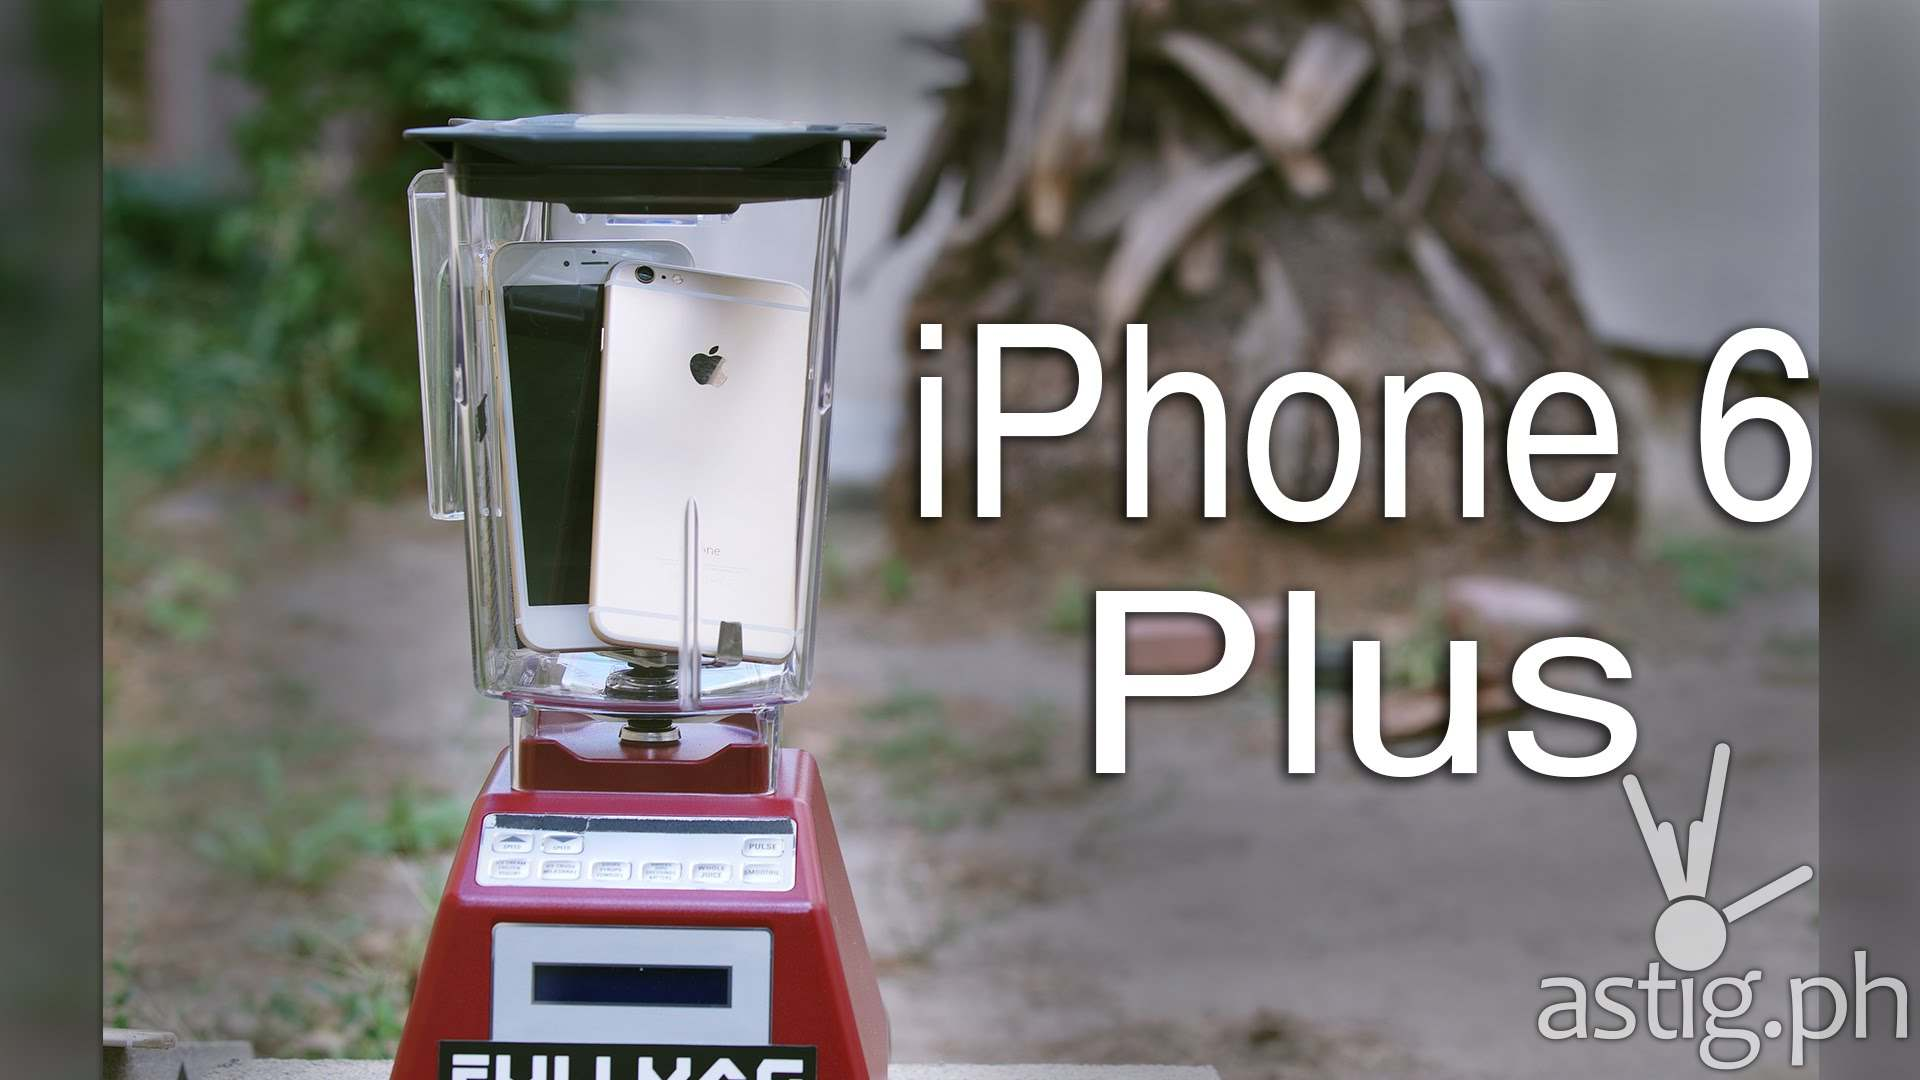 iPhone 6 Plus blend test Blendtec blender